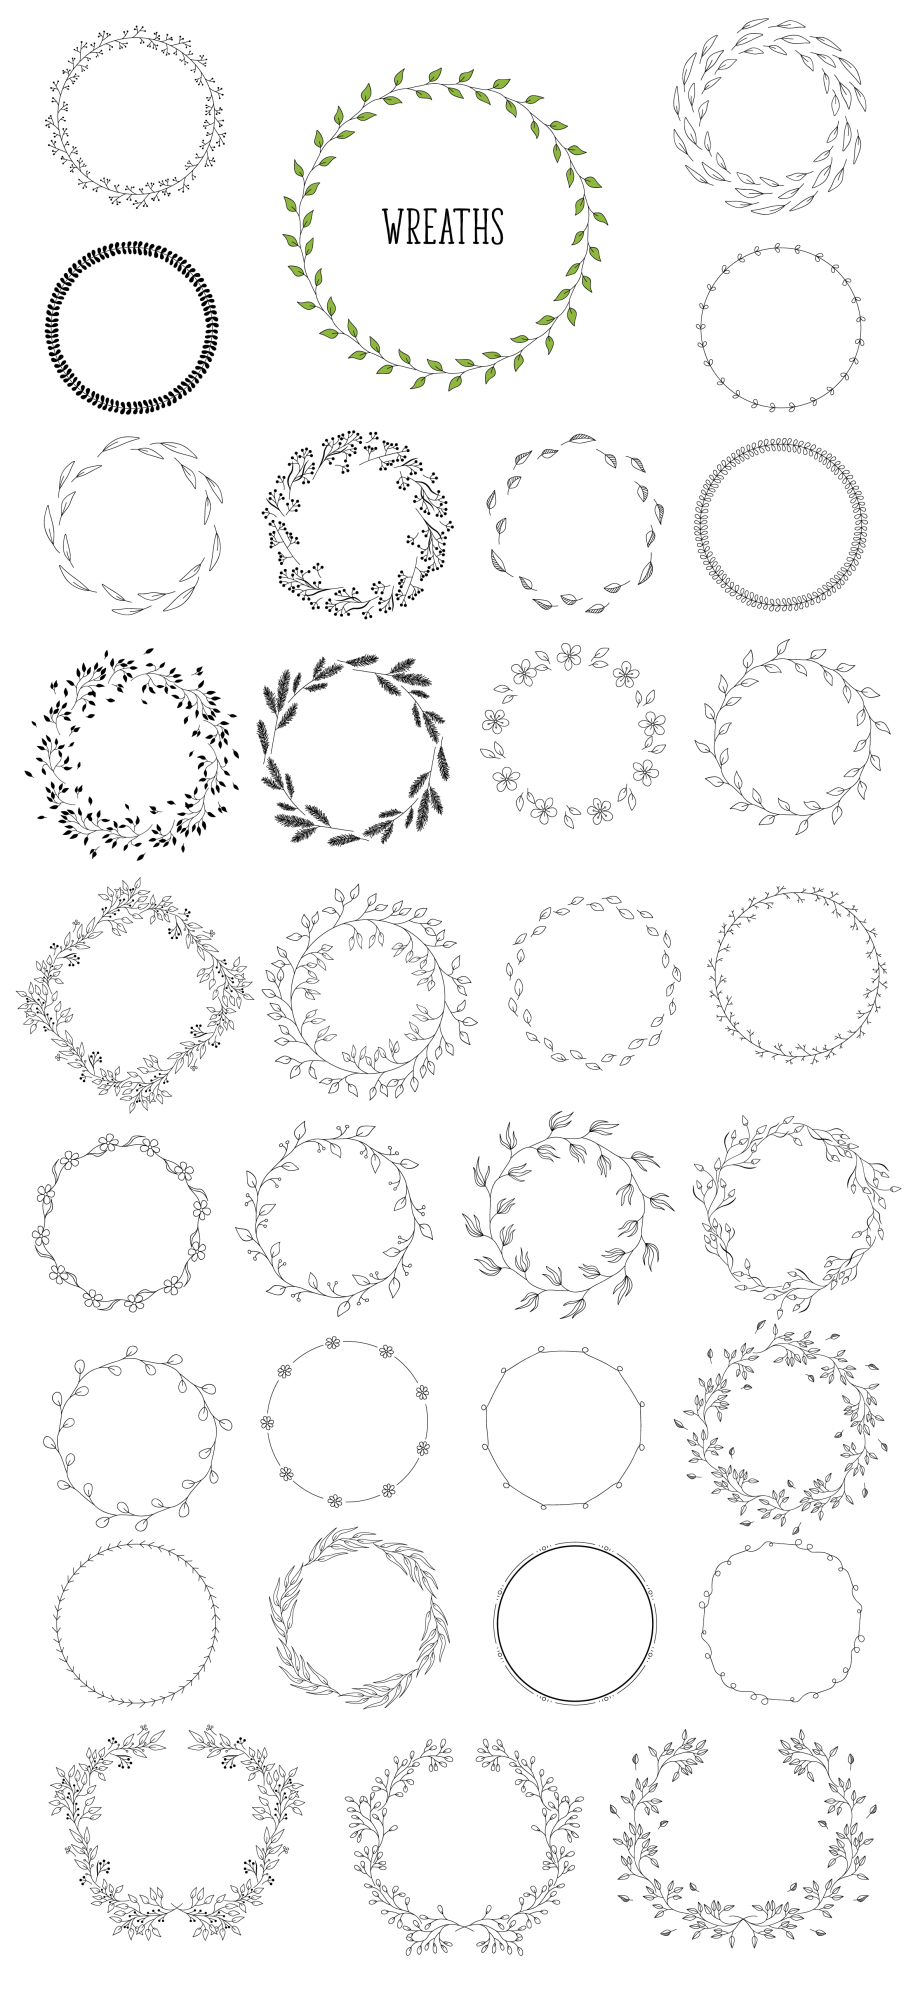 450 handsketched elements. Nature mega pack example image 6